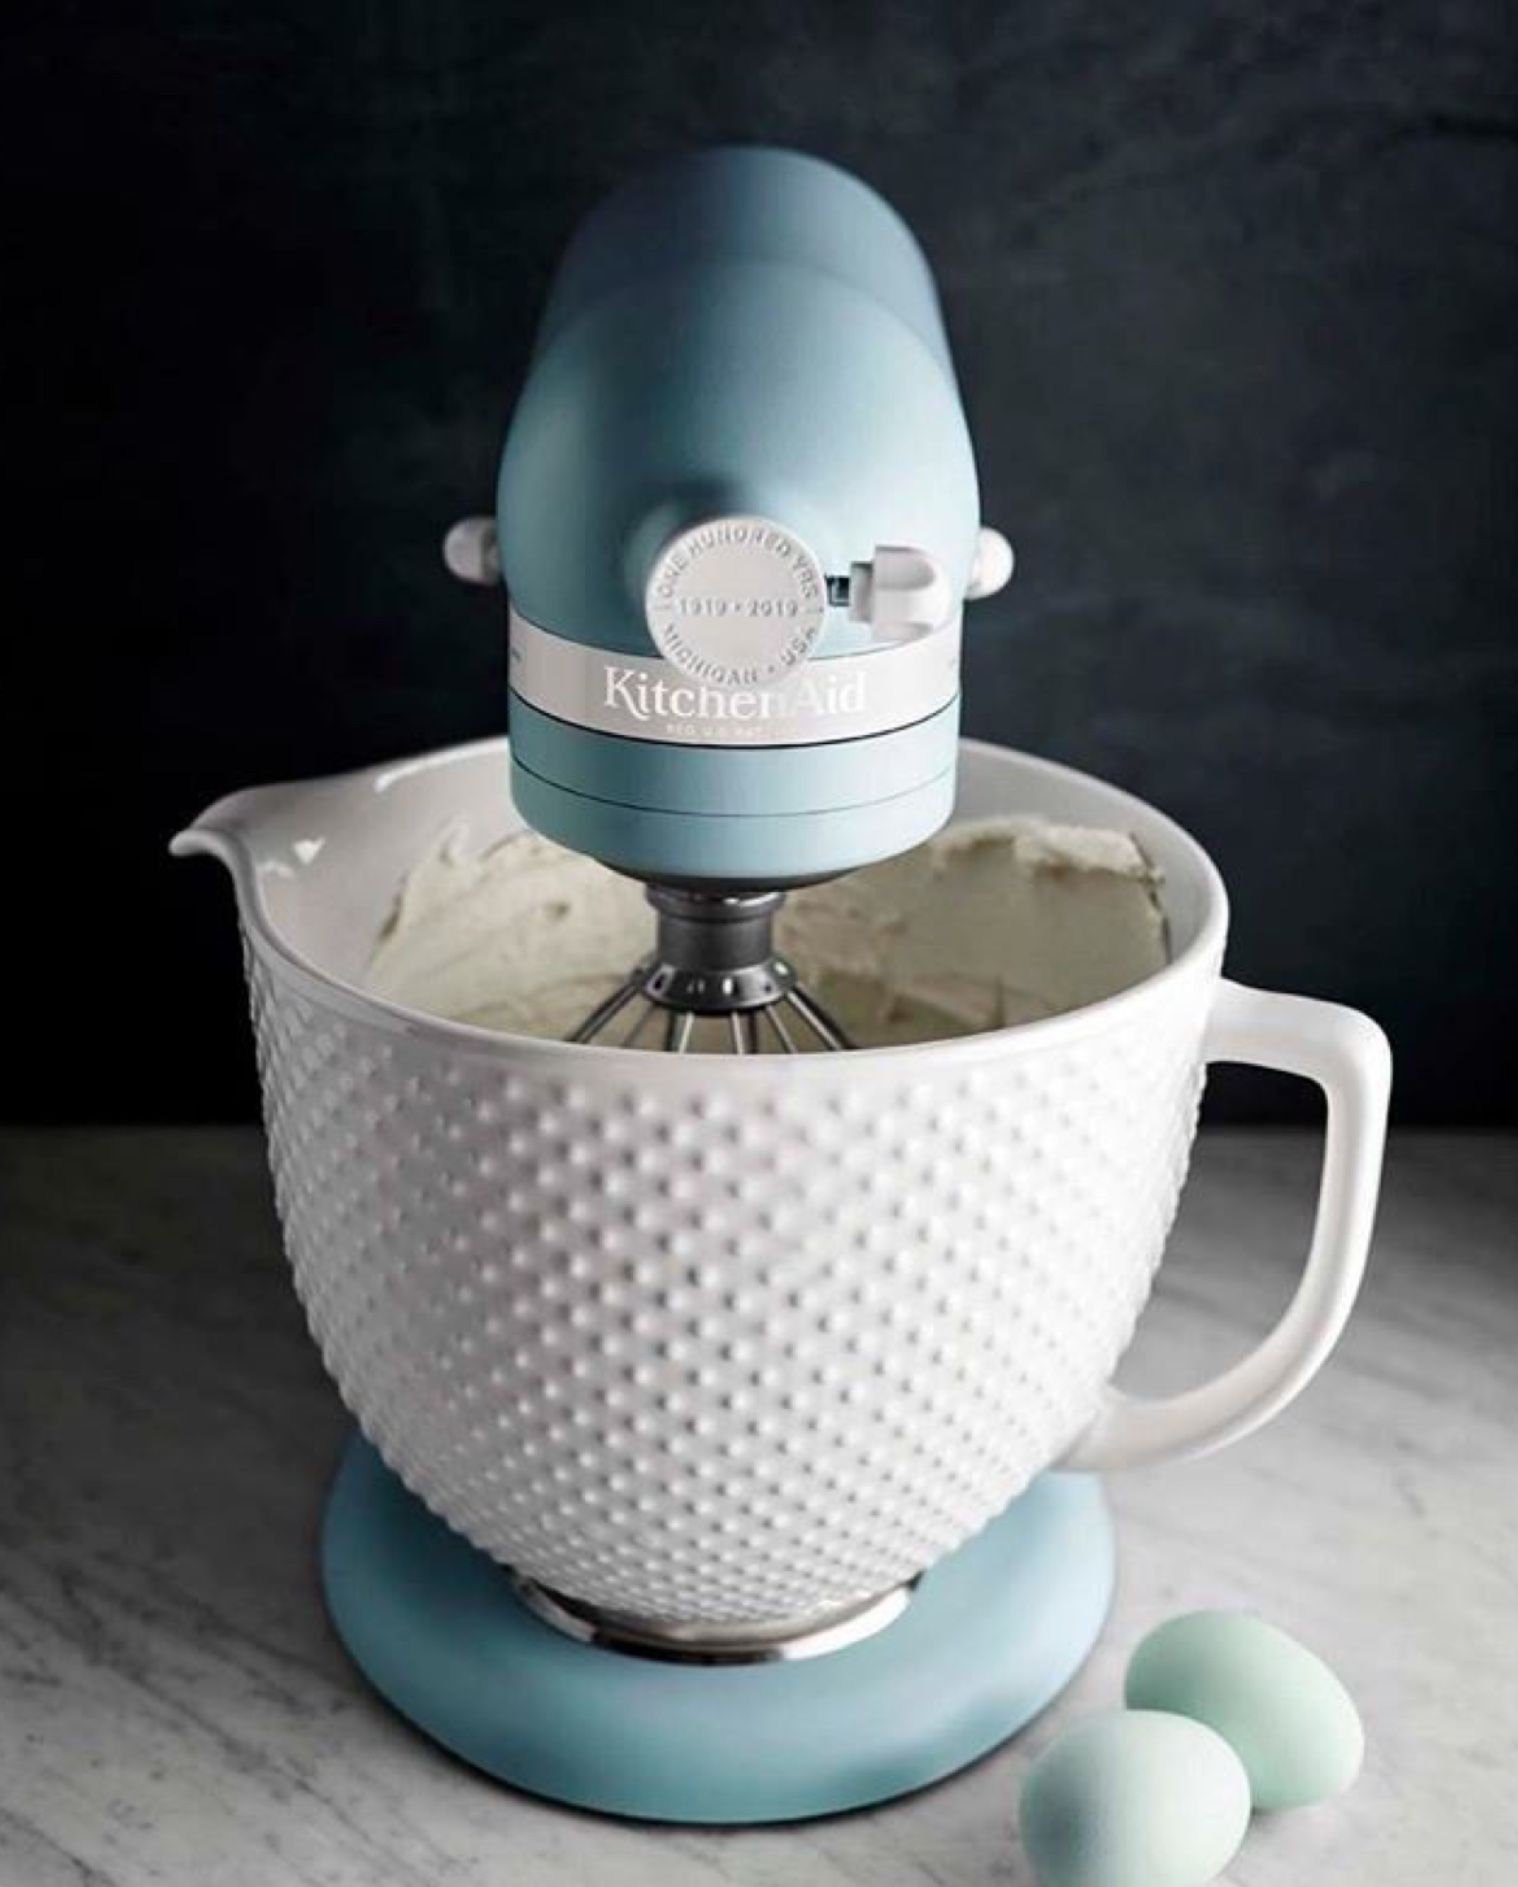 Idea by carmen laura on product design kitchen aid